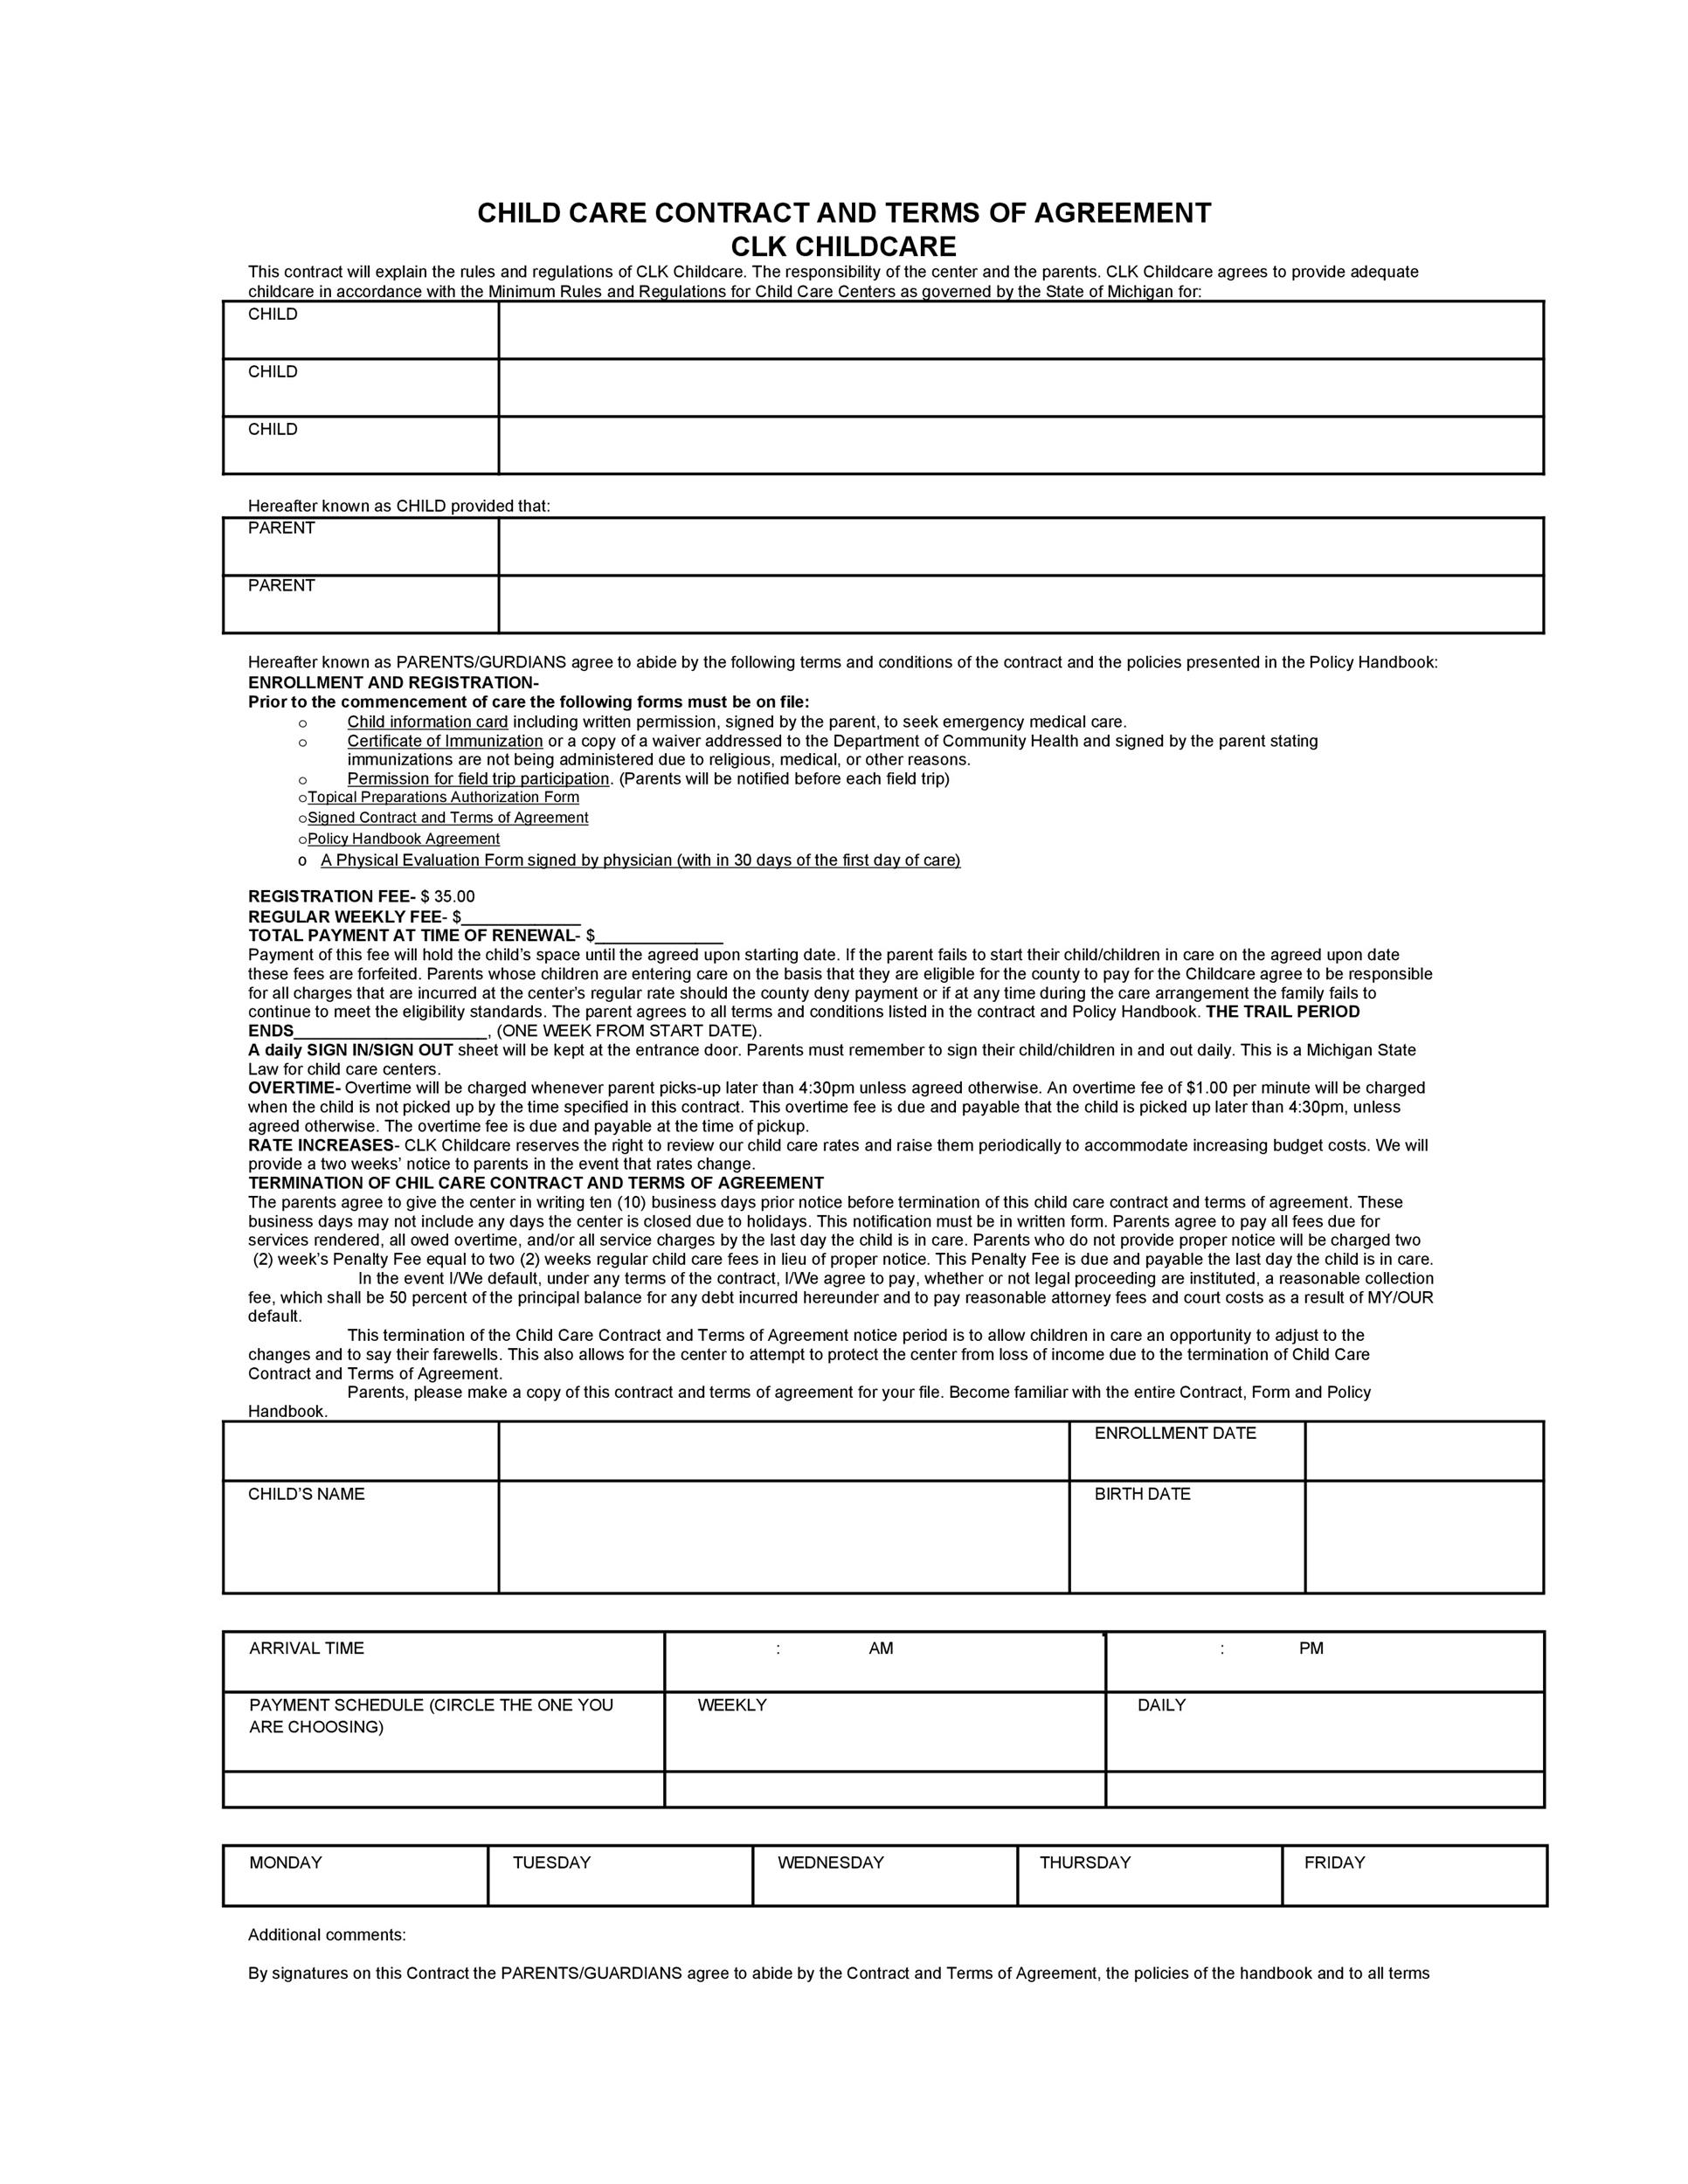 50 Daycare, Child Care & Babysitting Contract Templates